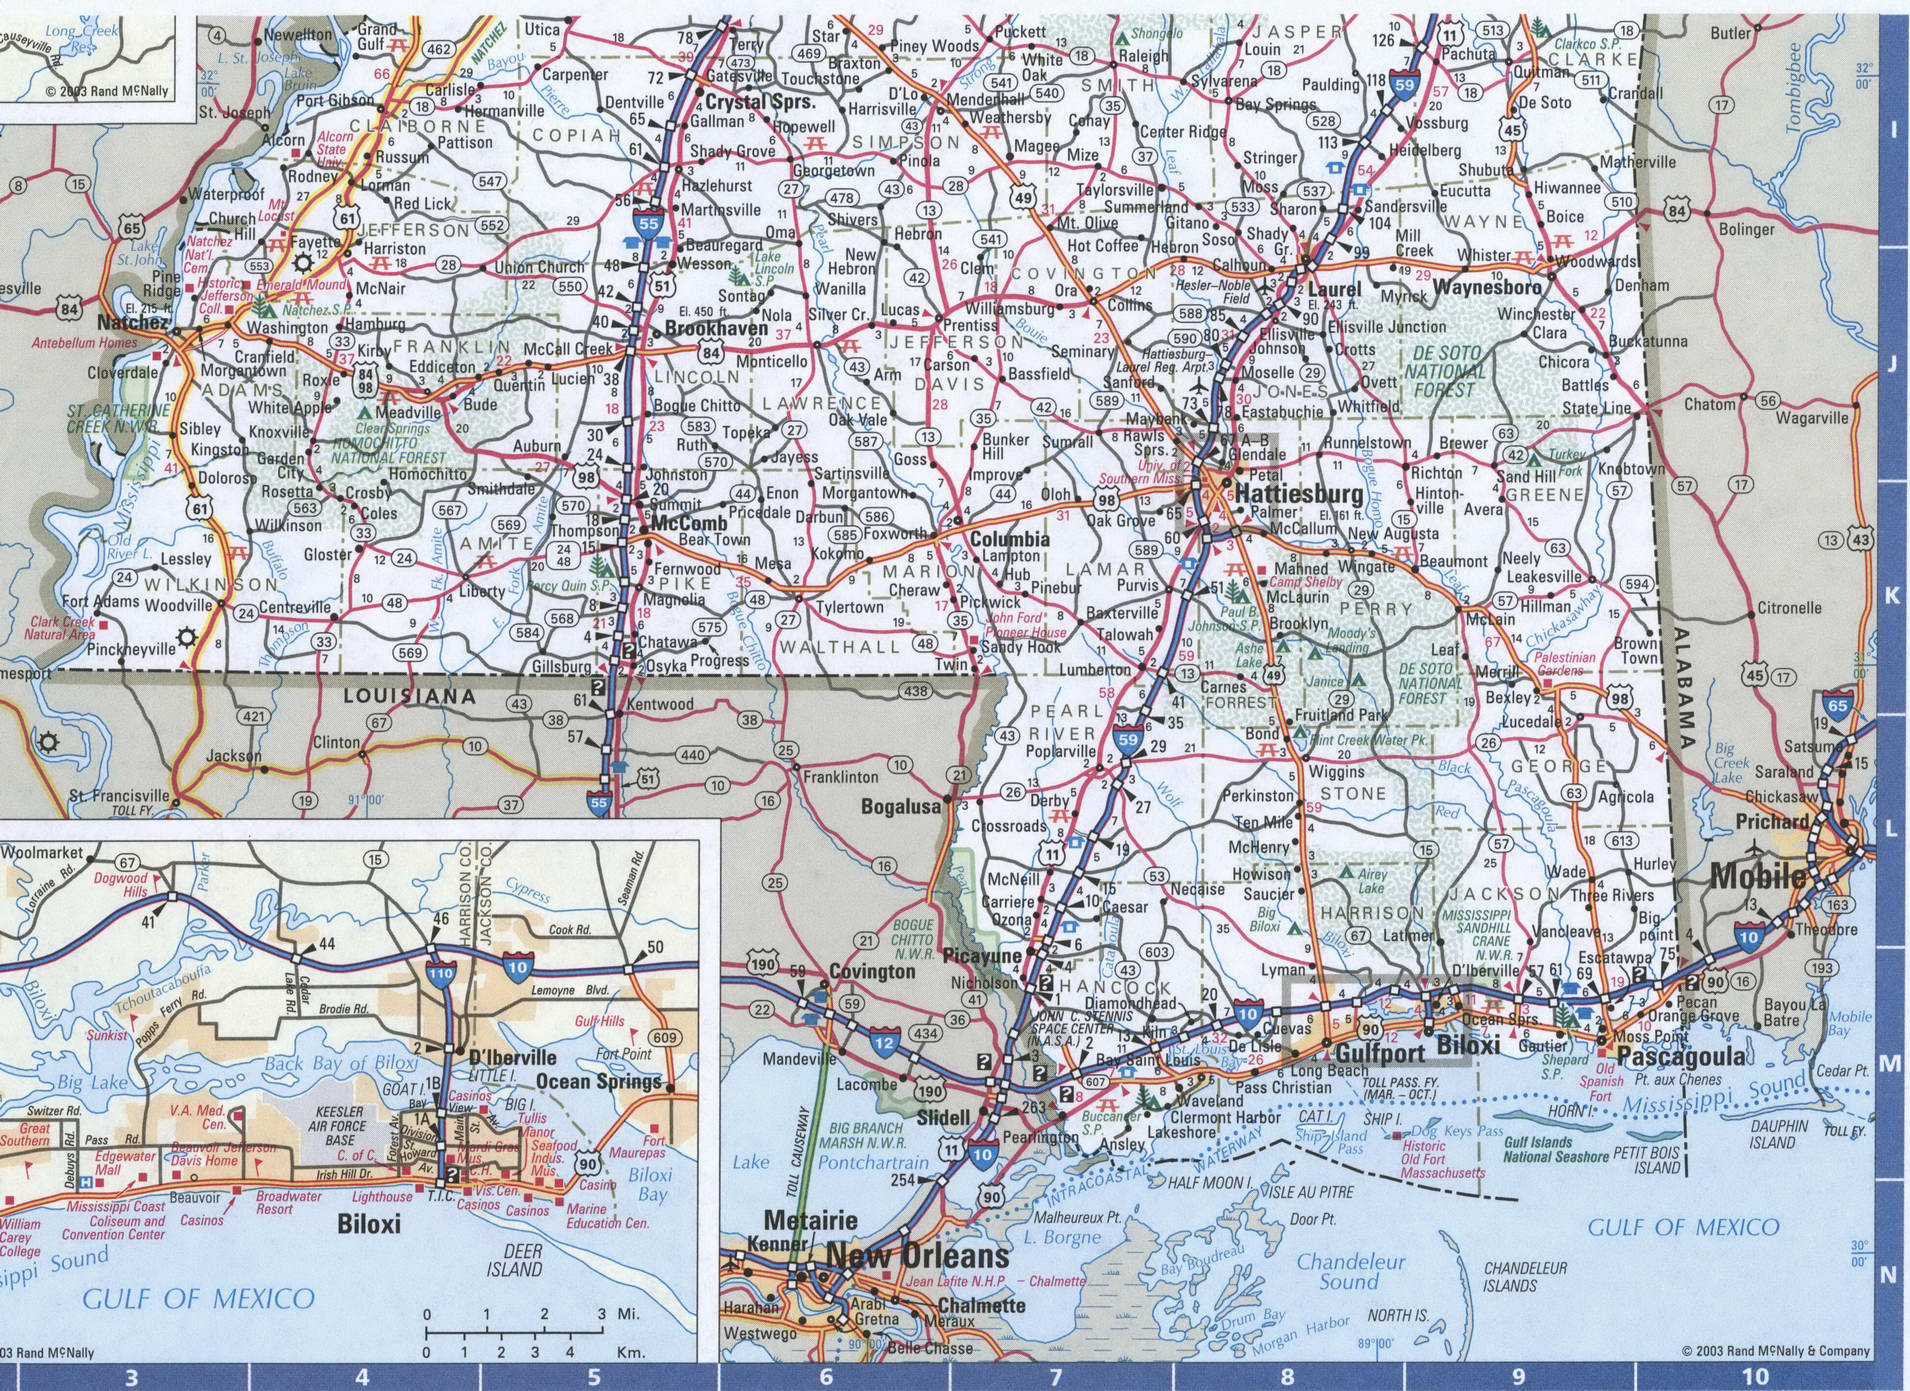 South Mississippi map